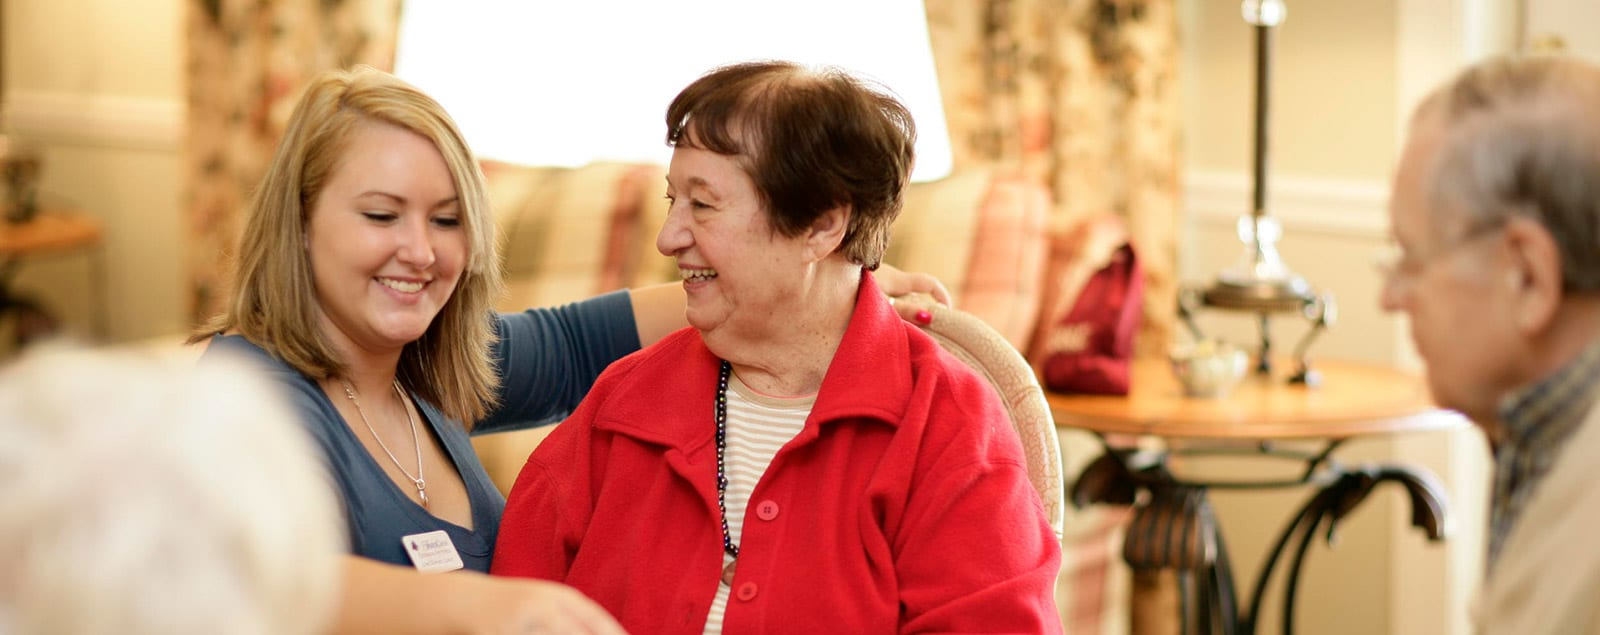 Gather your friends for our McKinney senior living events